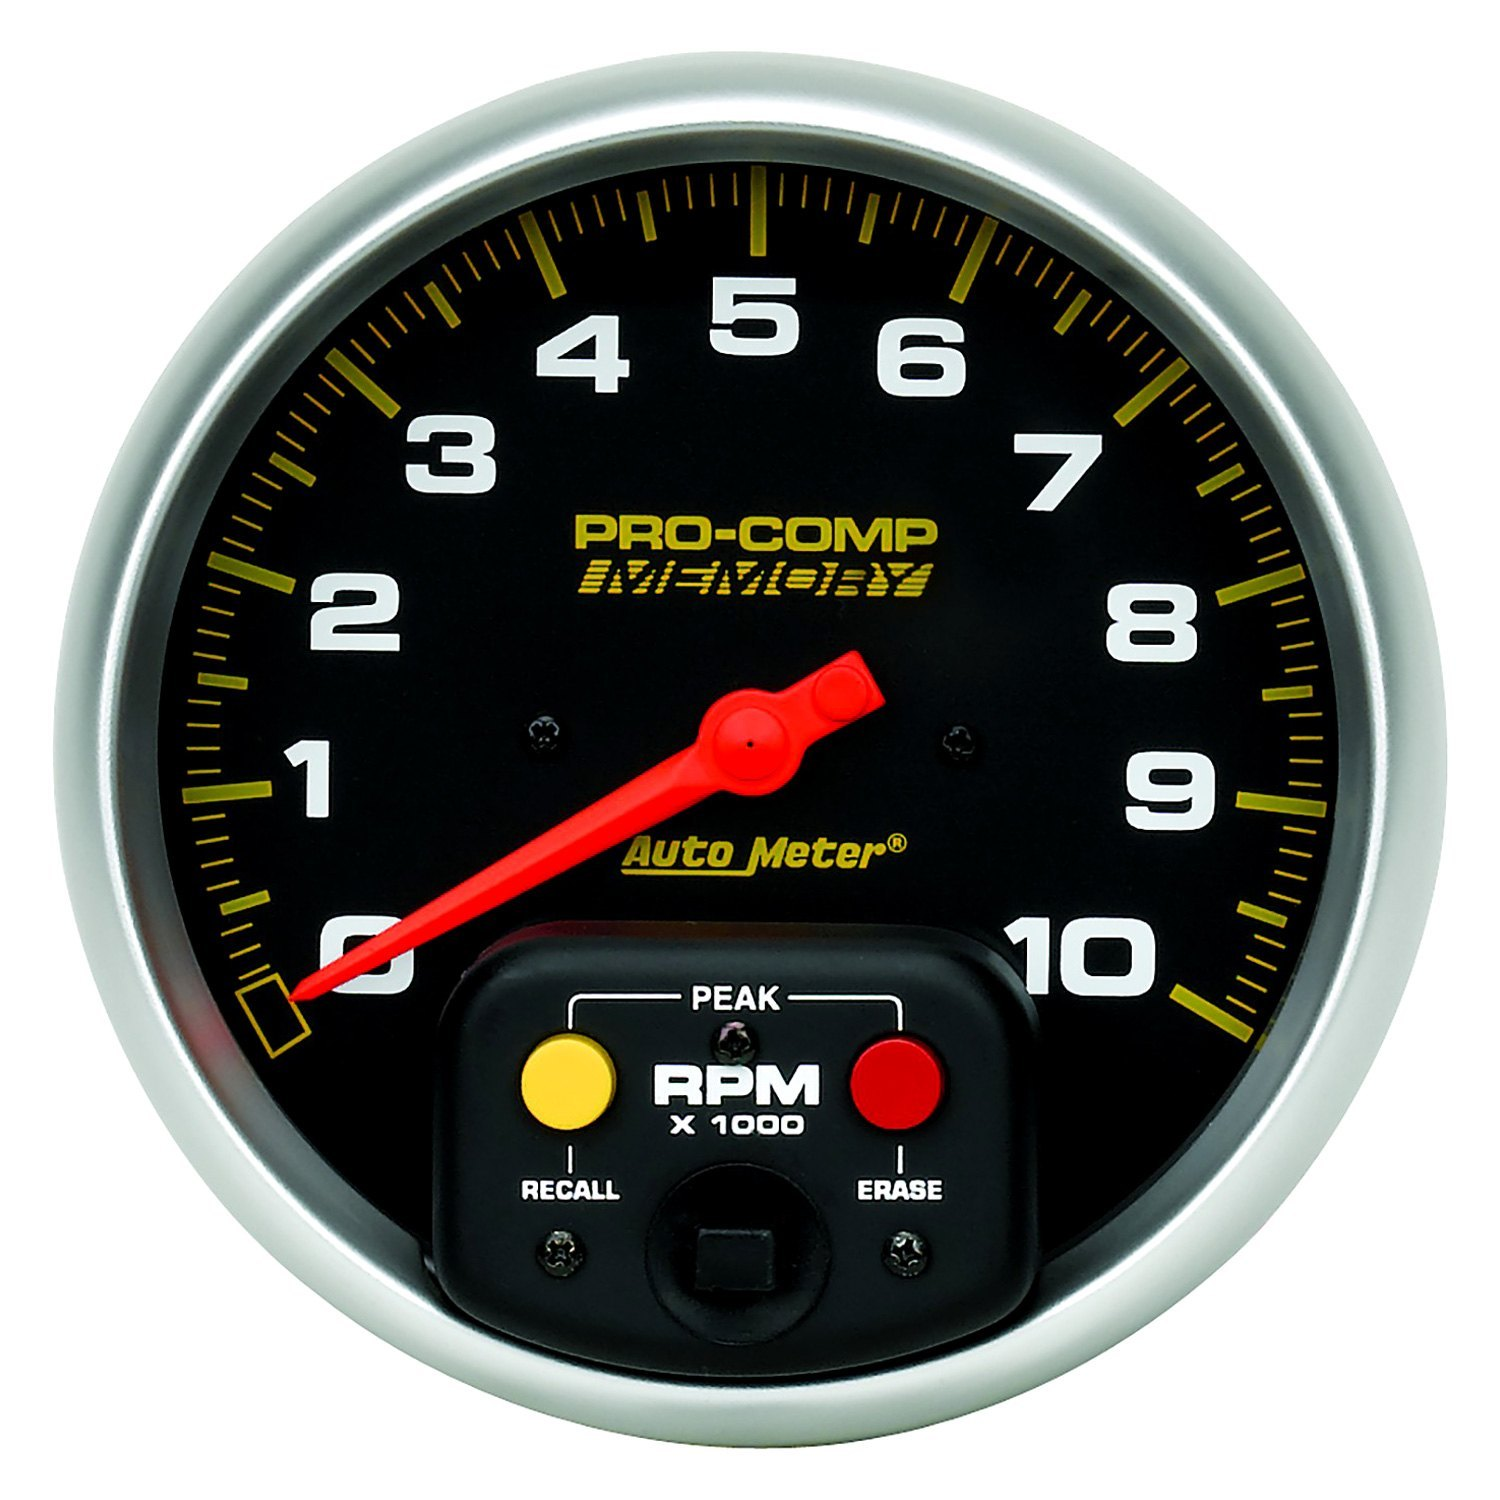 Pro Comp Auto Meter Tach Wiring Guide And Troubleshooting Of Gauge Diagram As Well Sport P U00ae 6801 Series 5 Quot Pedestal Tachometer 2 Super